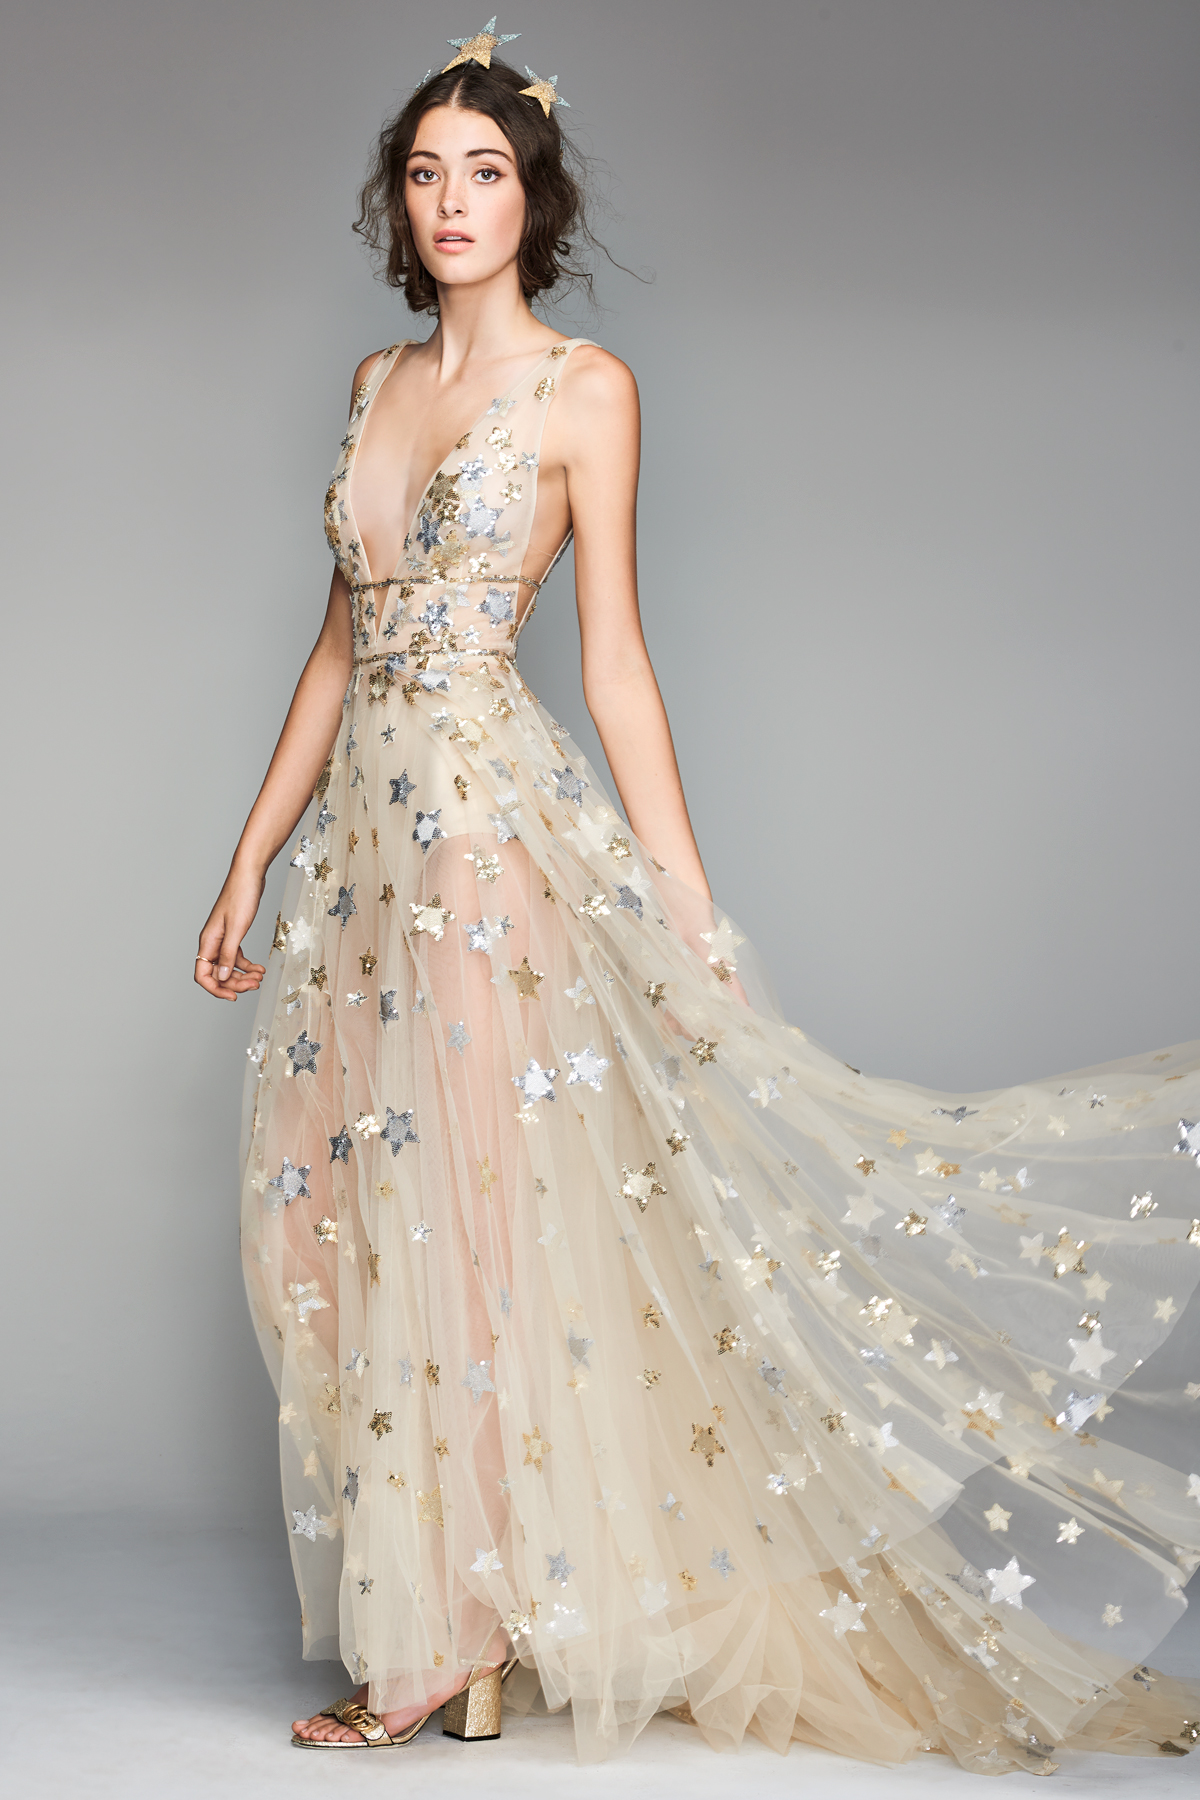 willowby by watters 2018 champagne metallic star wedding dress